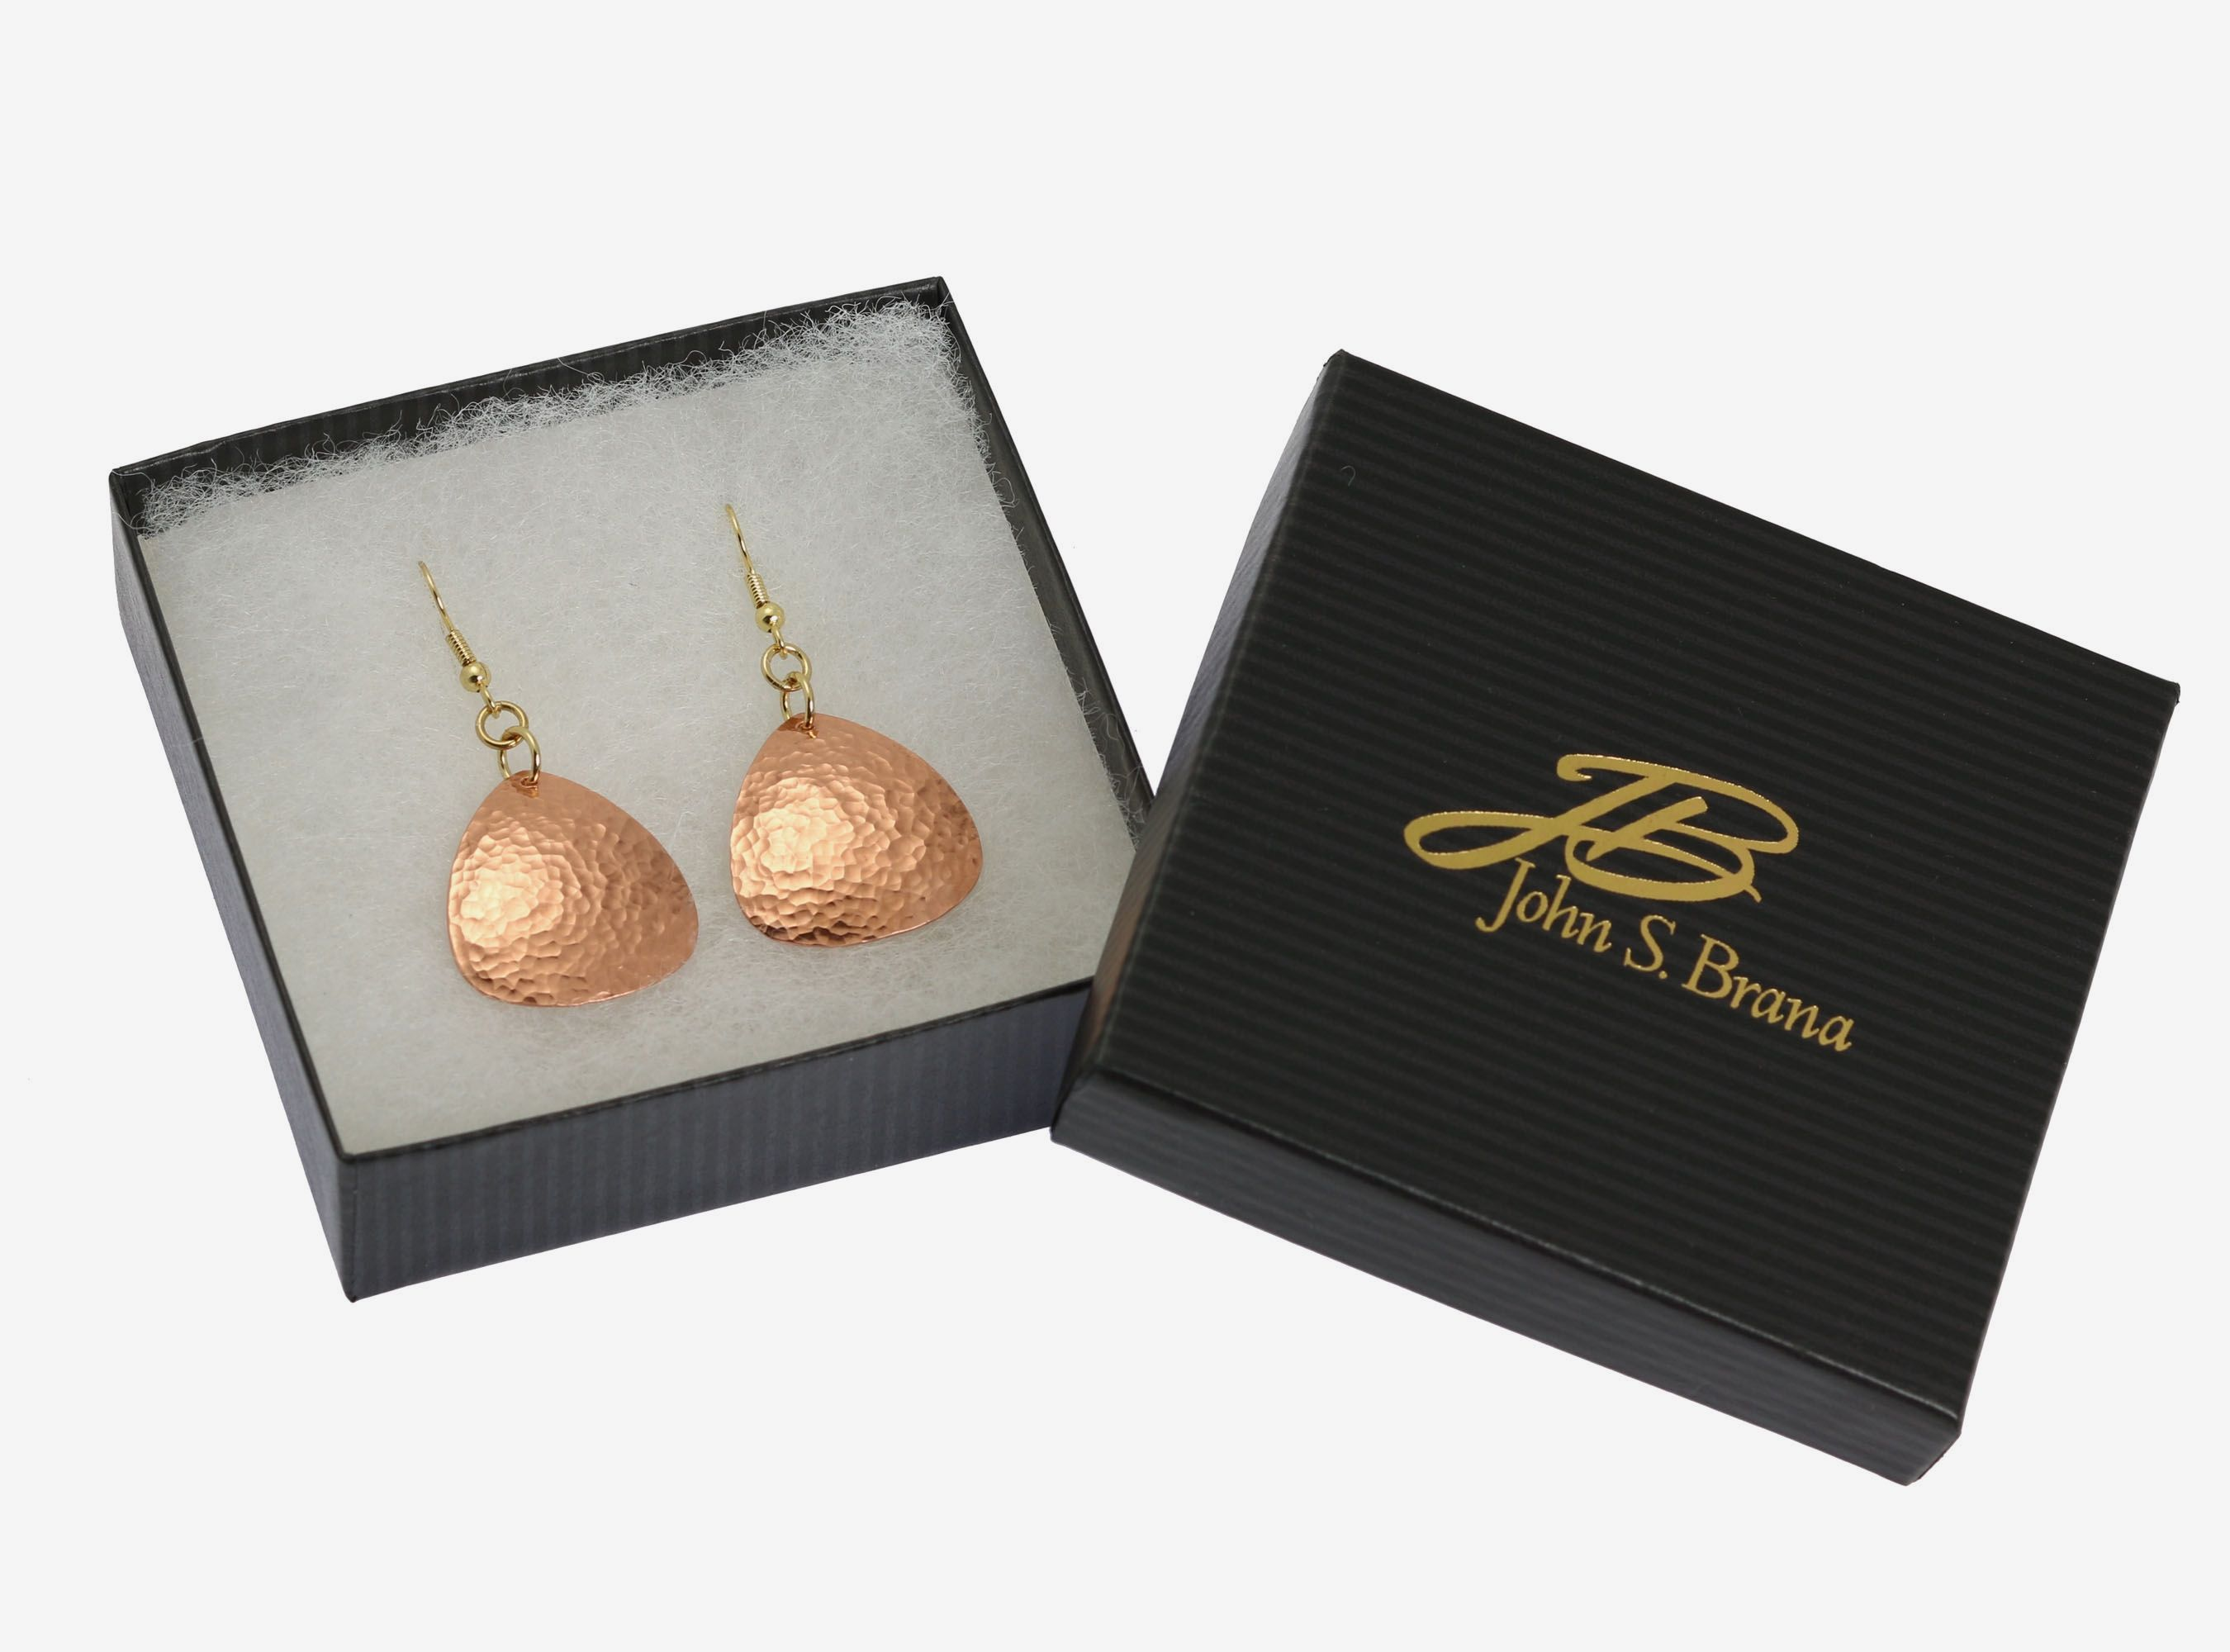 New! Phenomenal Hammered Copper Triangular Drop Earrings Offered on #AmazonPrime #Copper http://www.amazon.com/dp/B01AMU9DZA